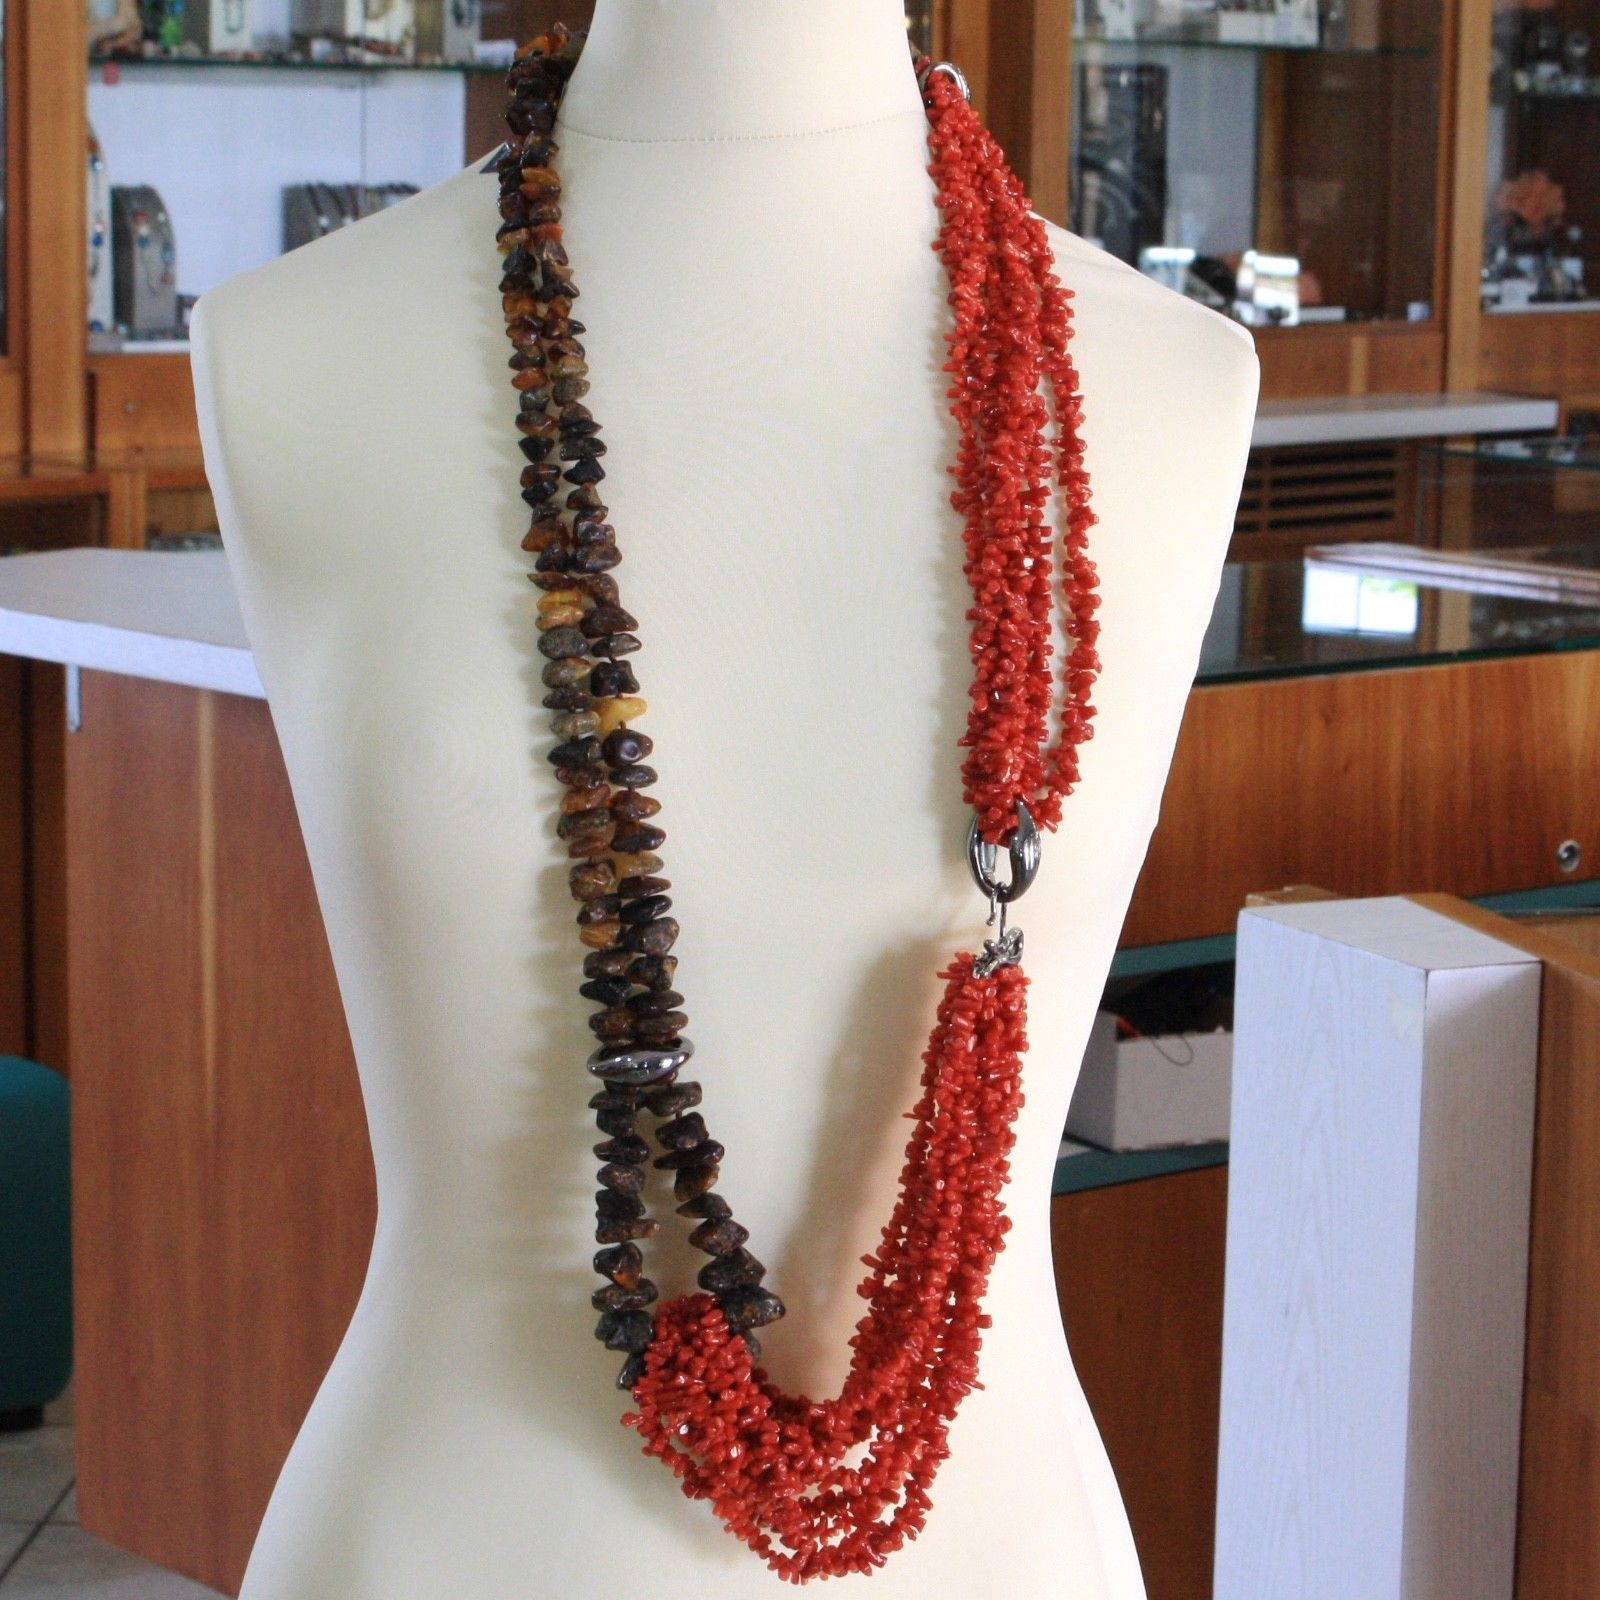 925 STERLING SILVER 105 CM LONG STRAND NECKLACE NATURAL RED CORAL, AMBER, ITALY